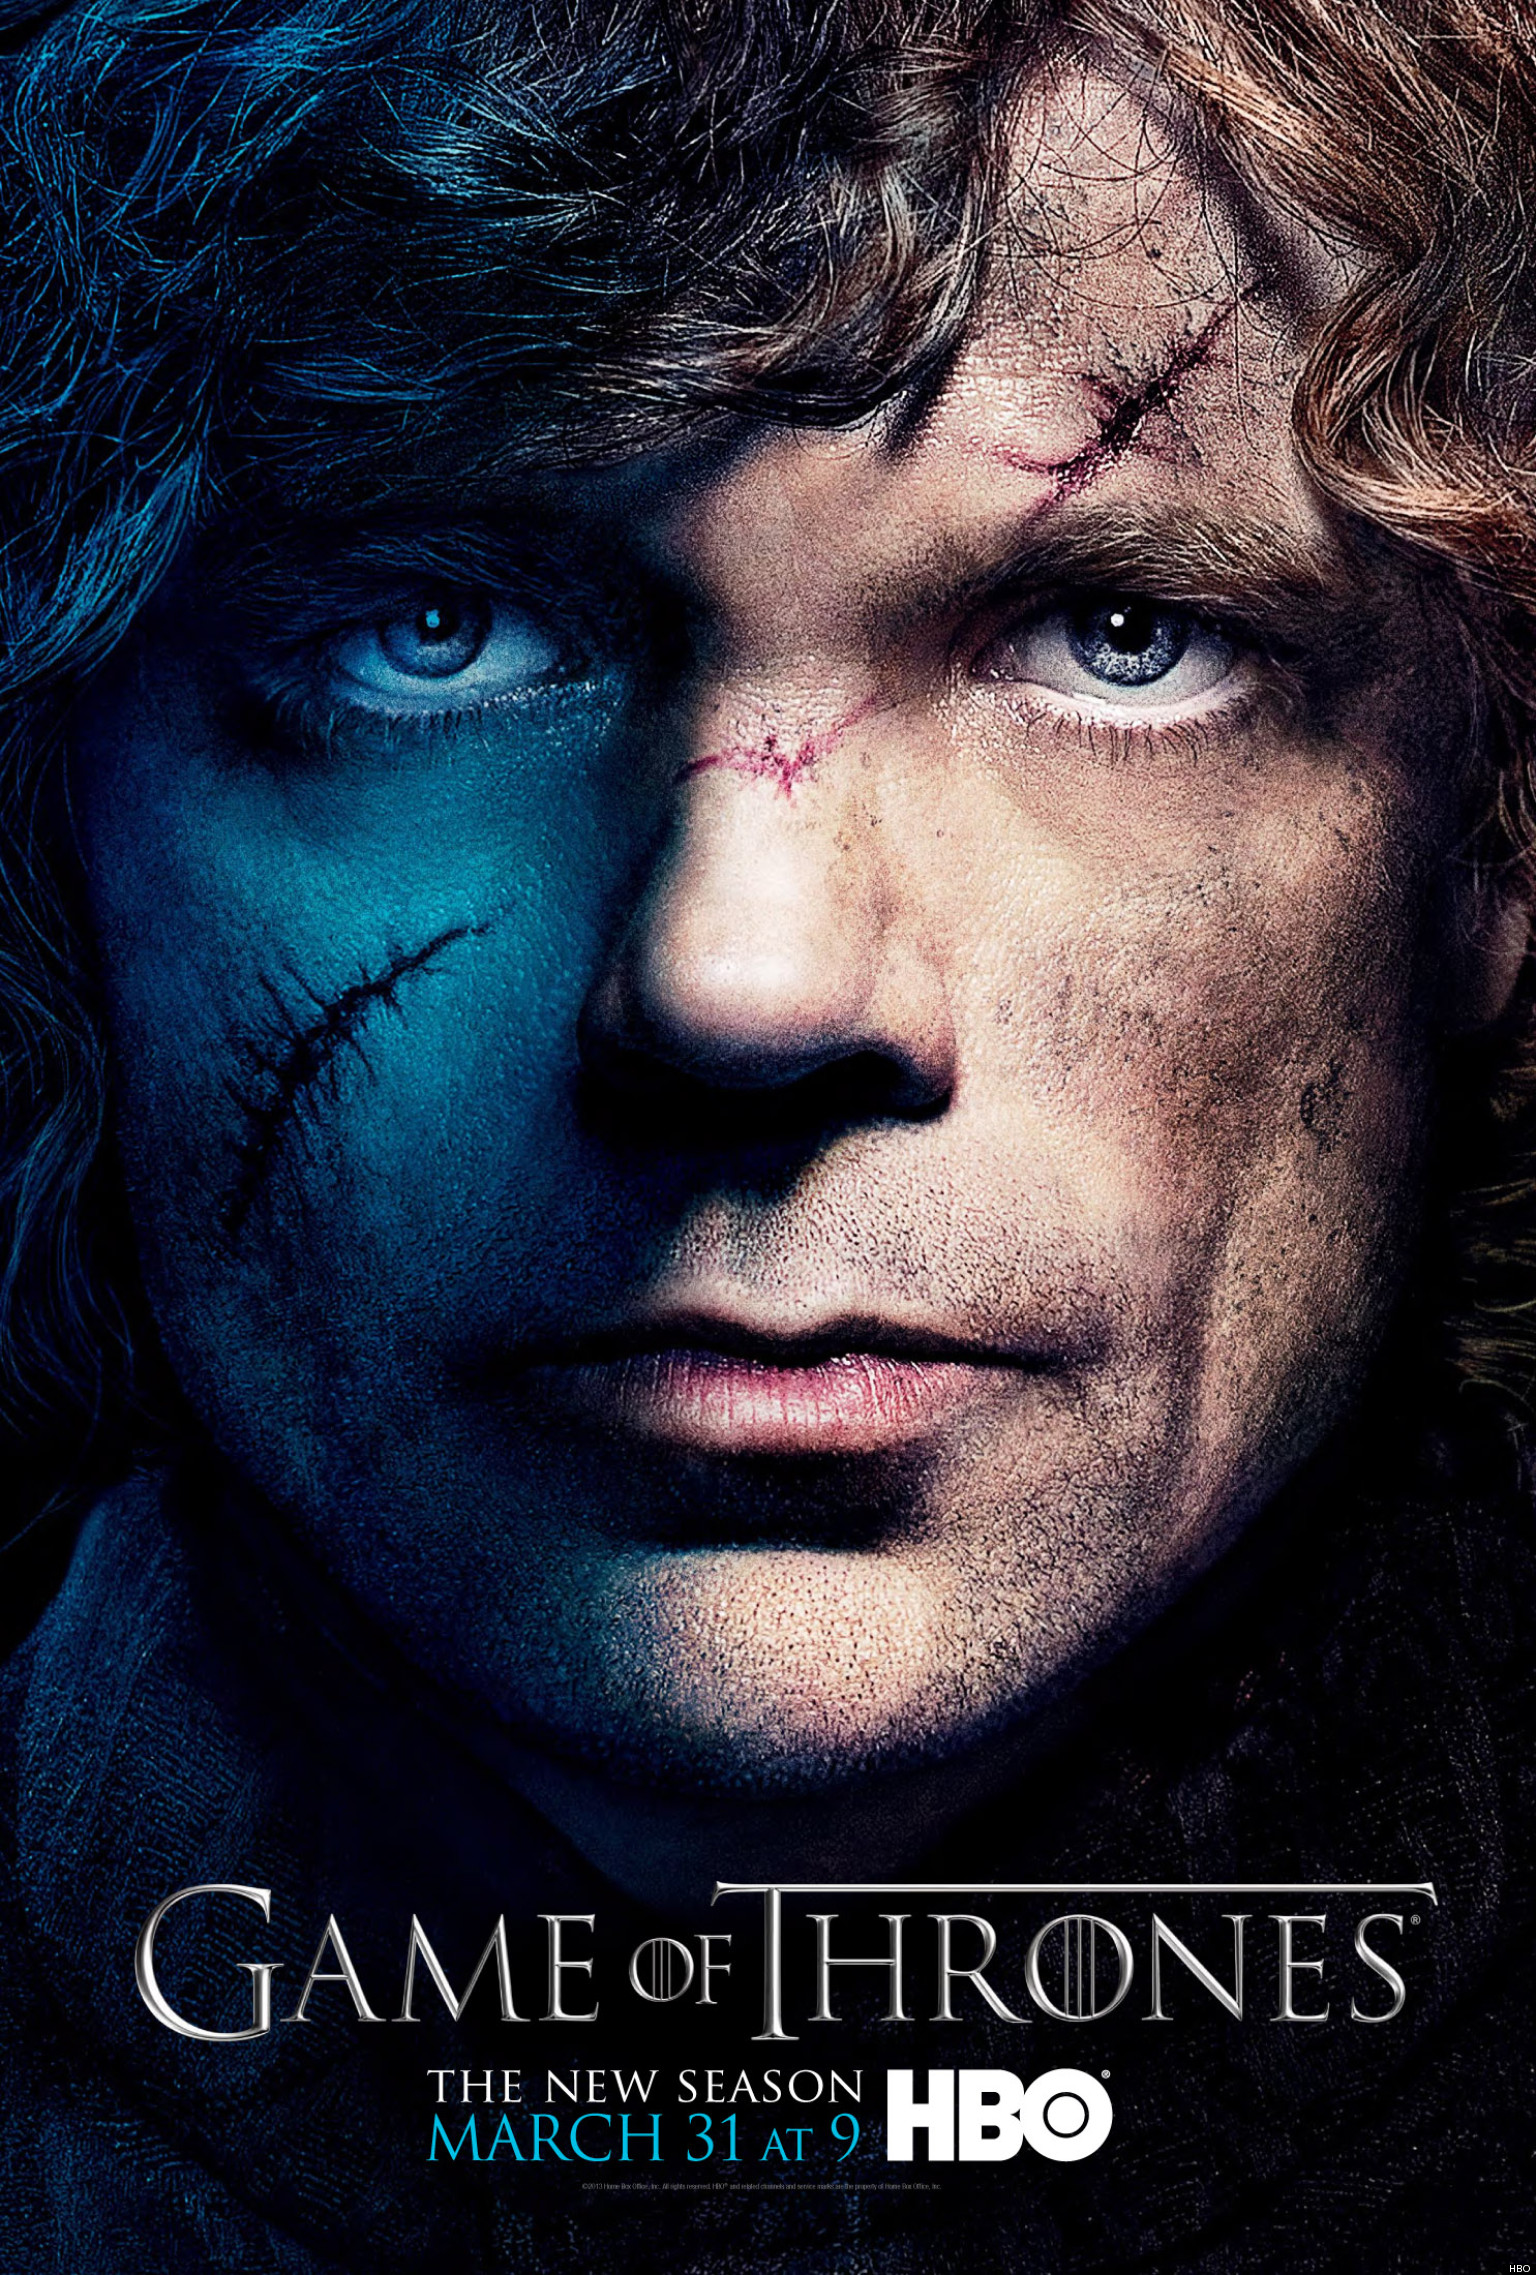 'Game Of Thrones' Posters Show Characters' Dark Side